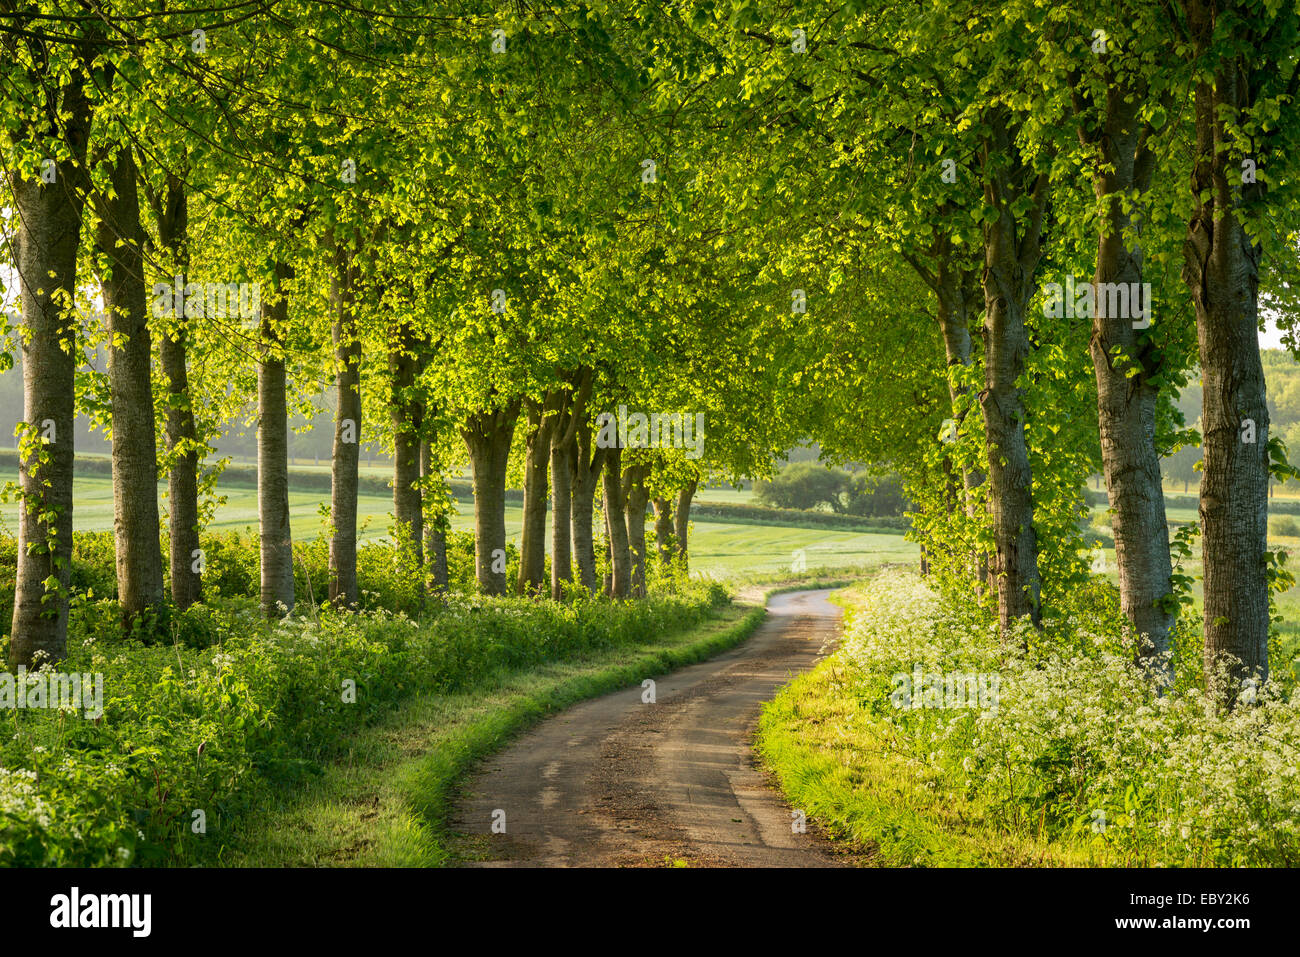 Tree lined country lane in rural Dorset, England. Spring (May) 2014. - Stock Image